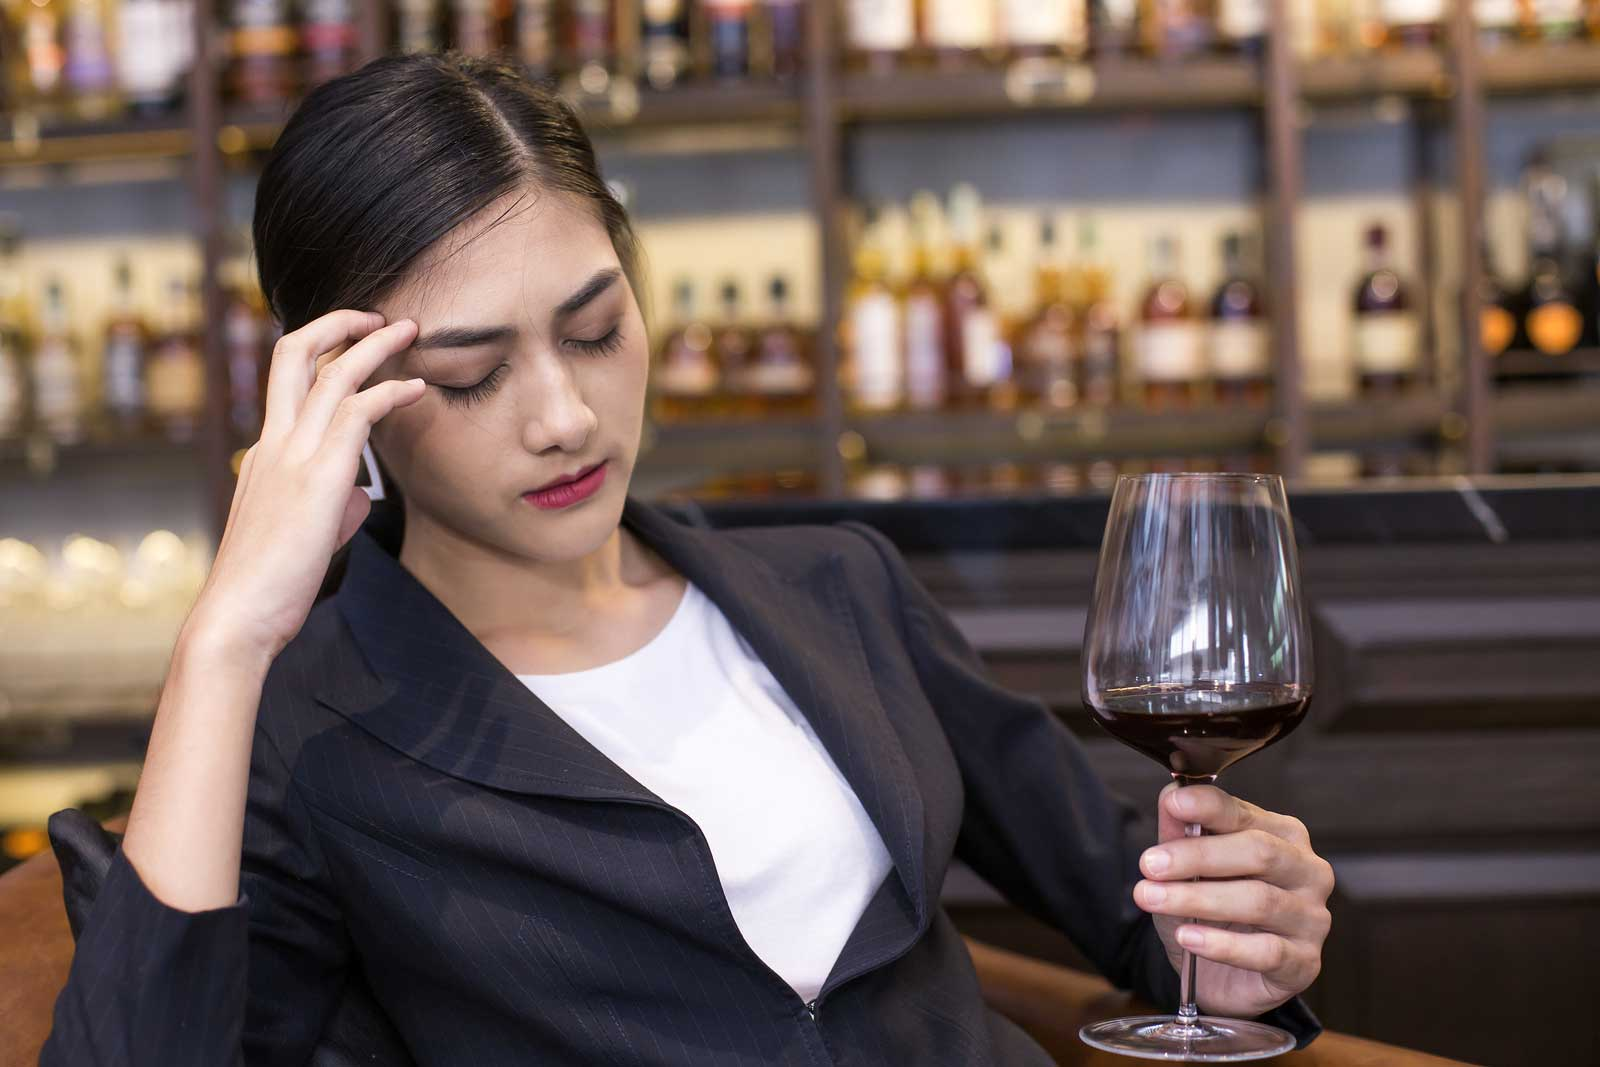 Does Alcohol Cause Vertigo and Dizziness?